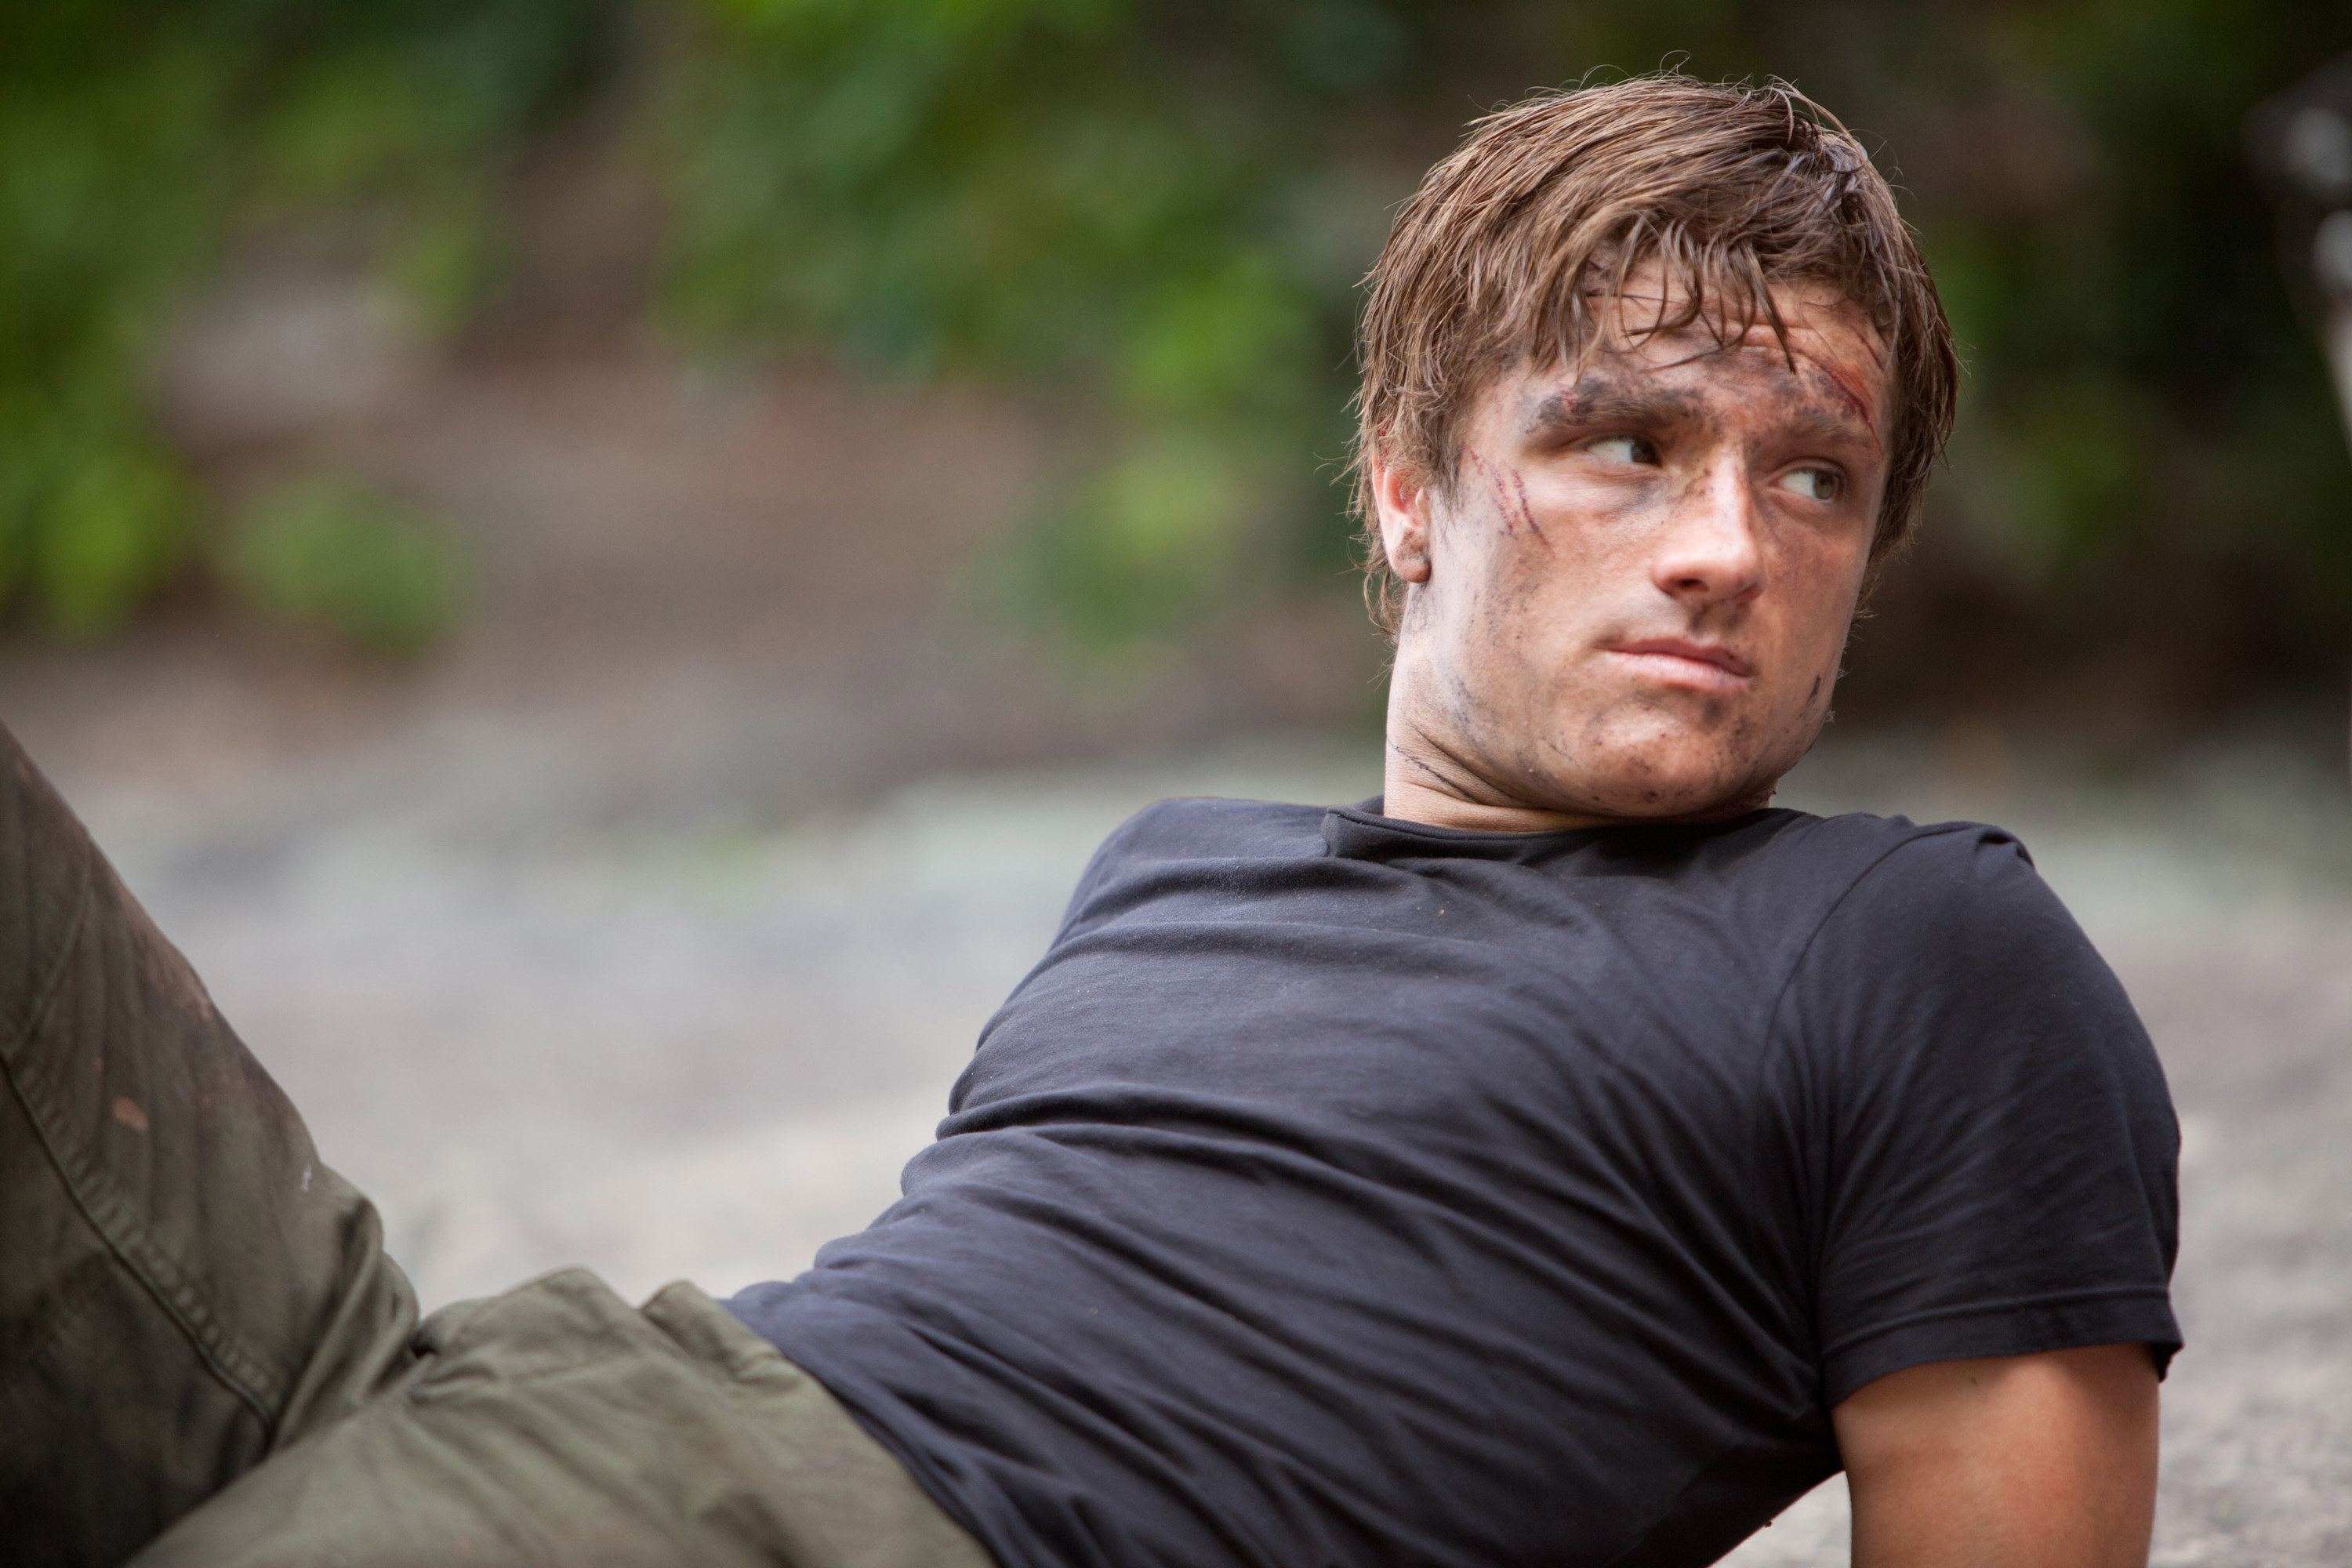 Peeta lying on the ground covered in dirt